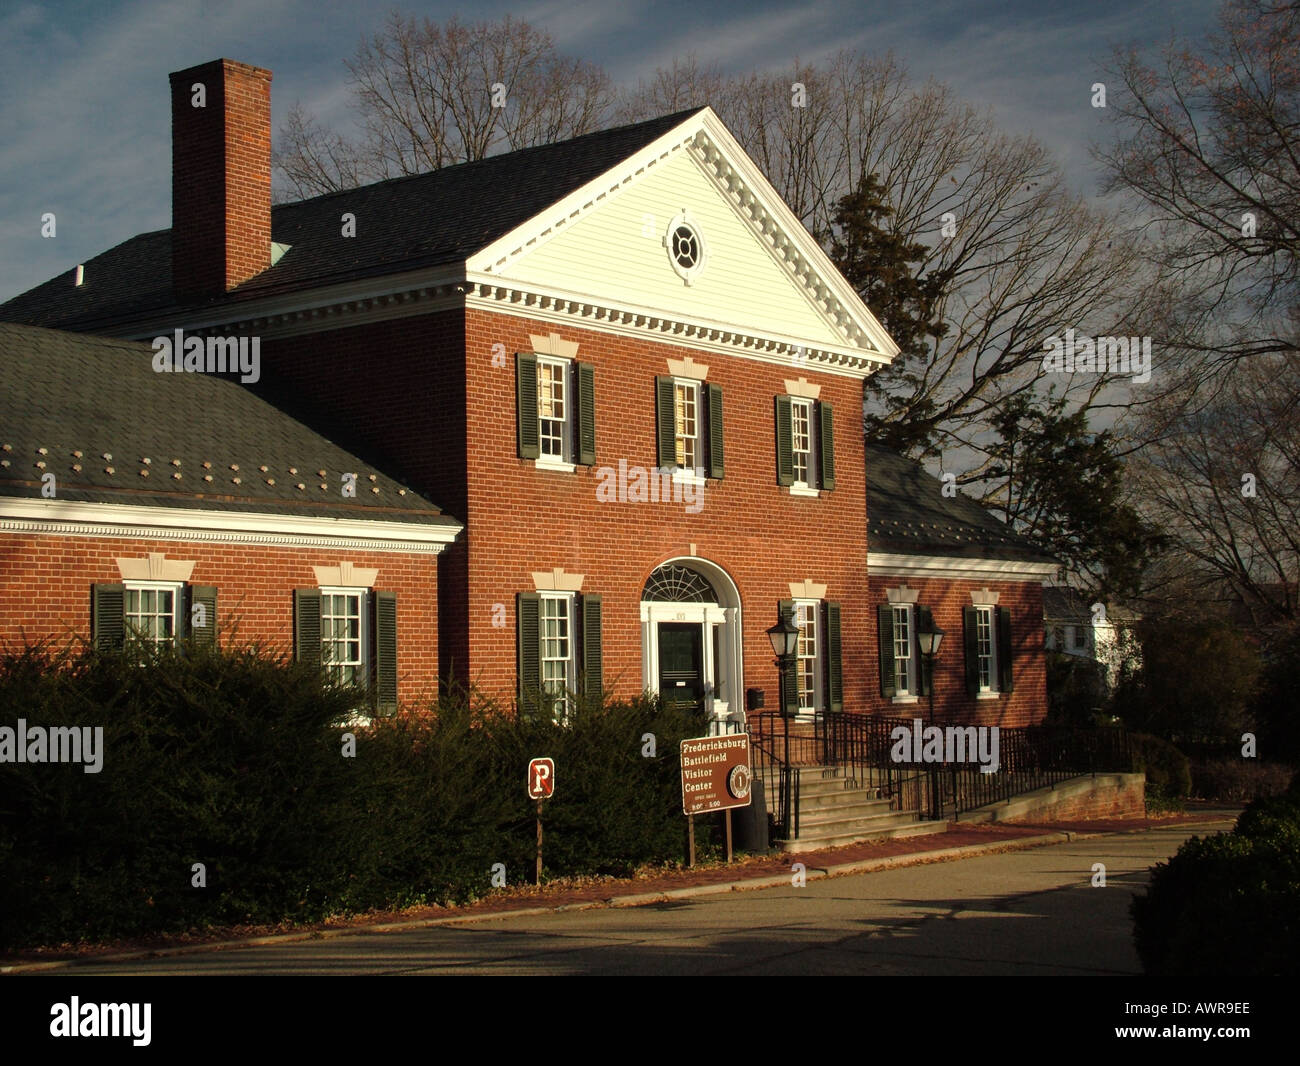 Spotsylvania Stock Photos & Spotsylvania Stock Images - Page 3 - Alamy